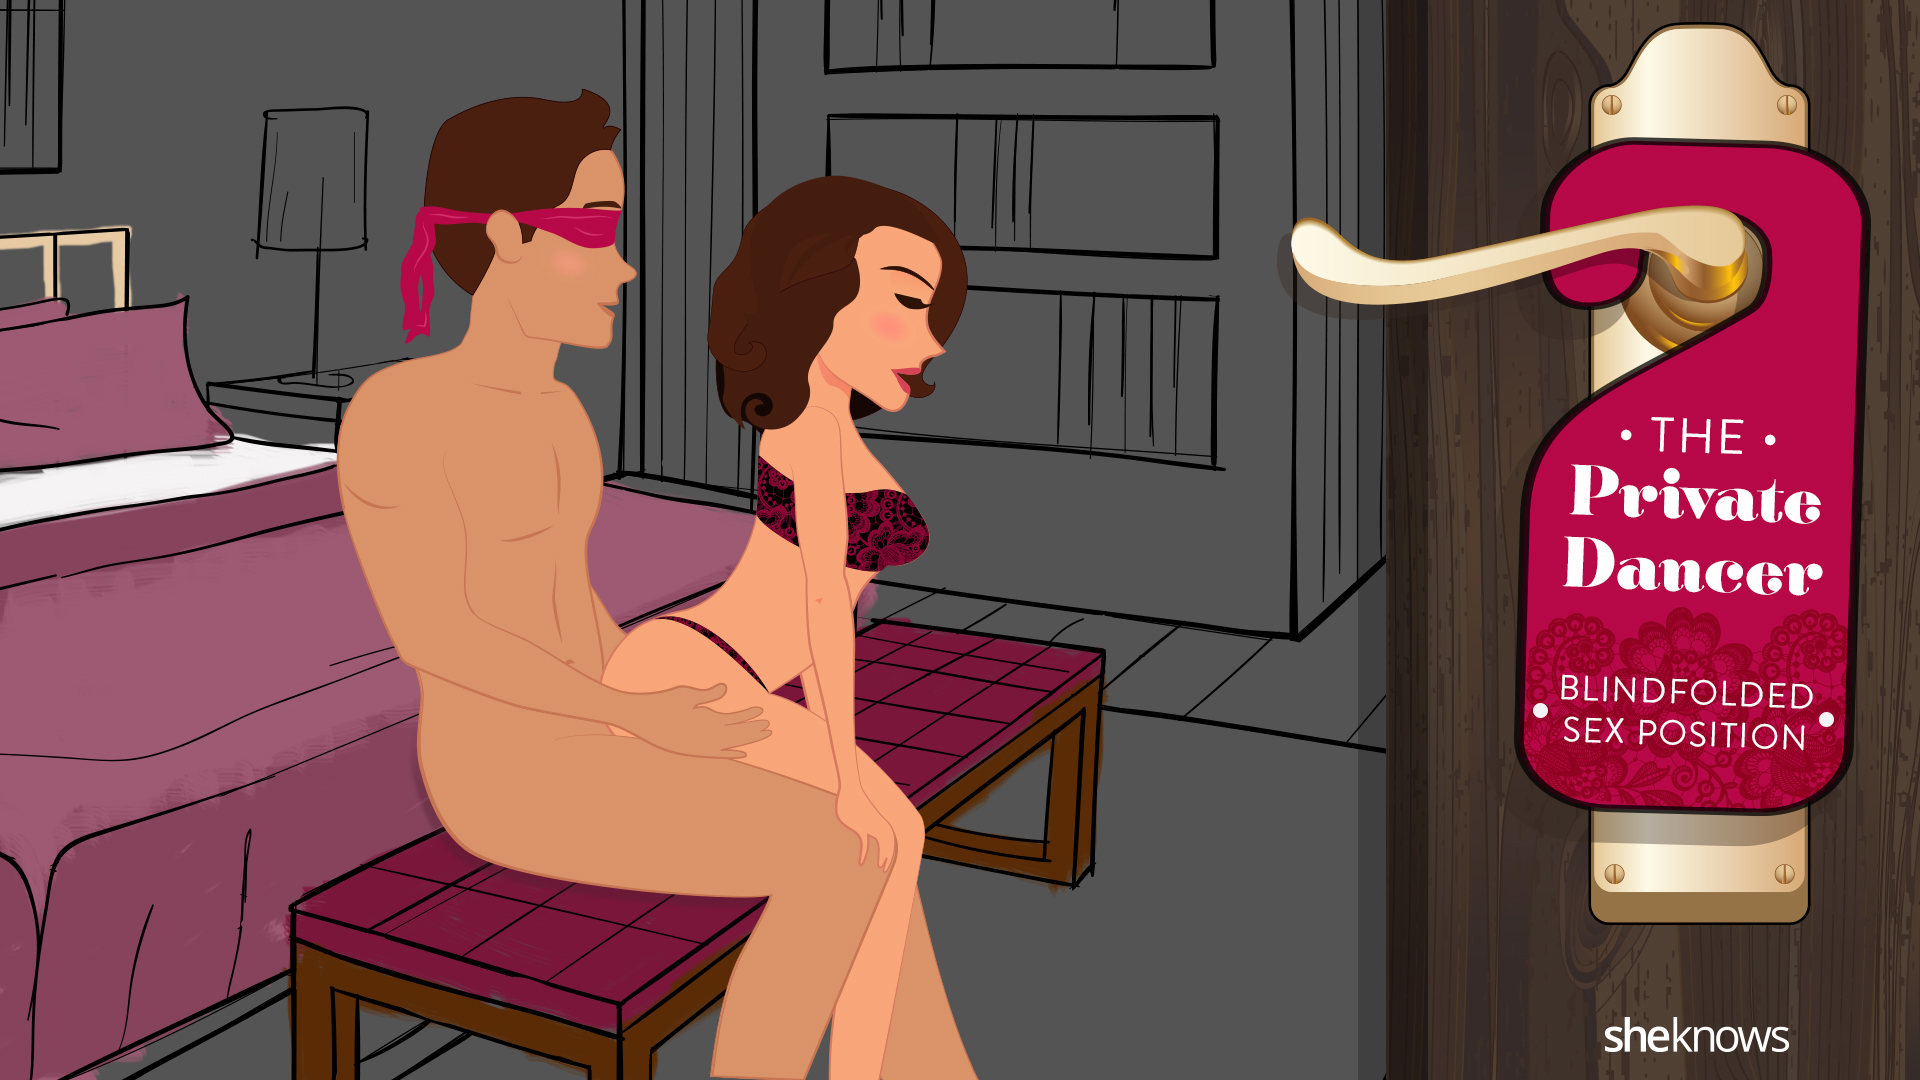 Sex while wearing blindfold increases intimacy